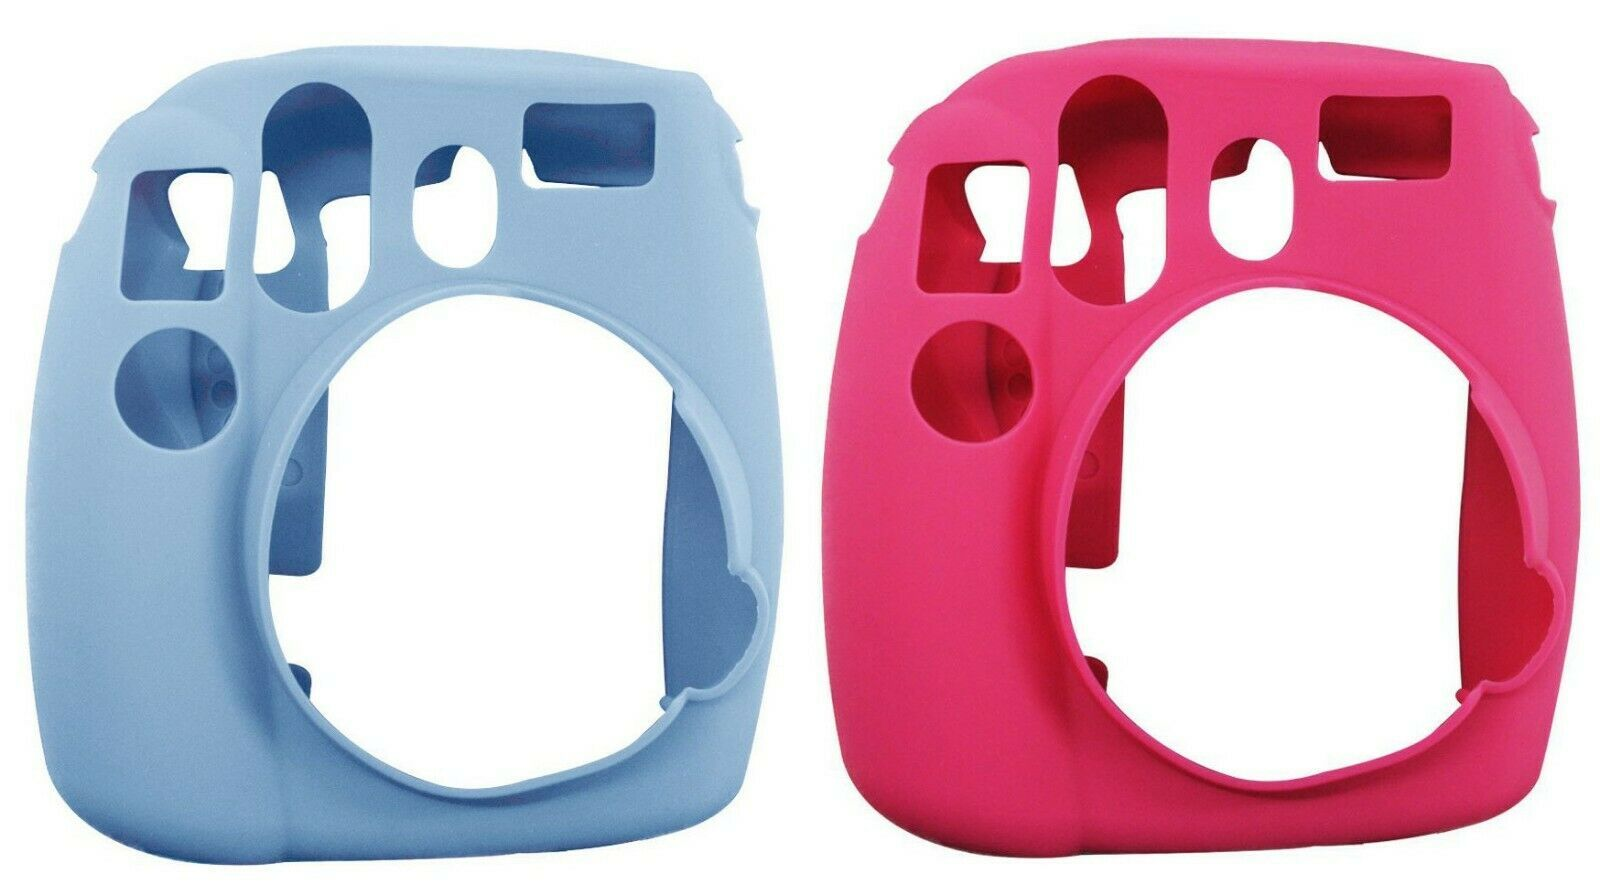 ATNY Instax Instant Camera Silicone Case - Pink or Blue NEW Free US Shipping